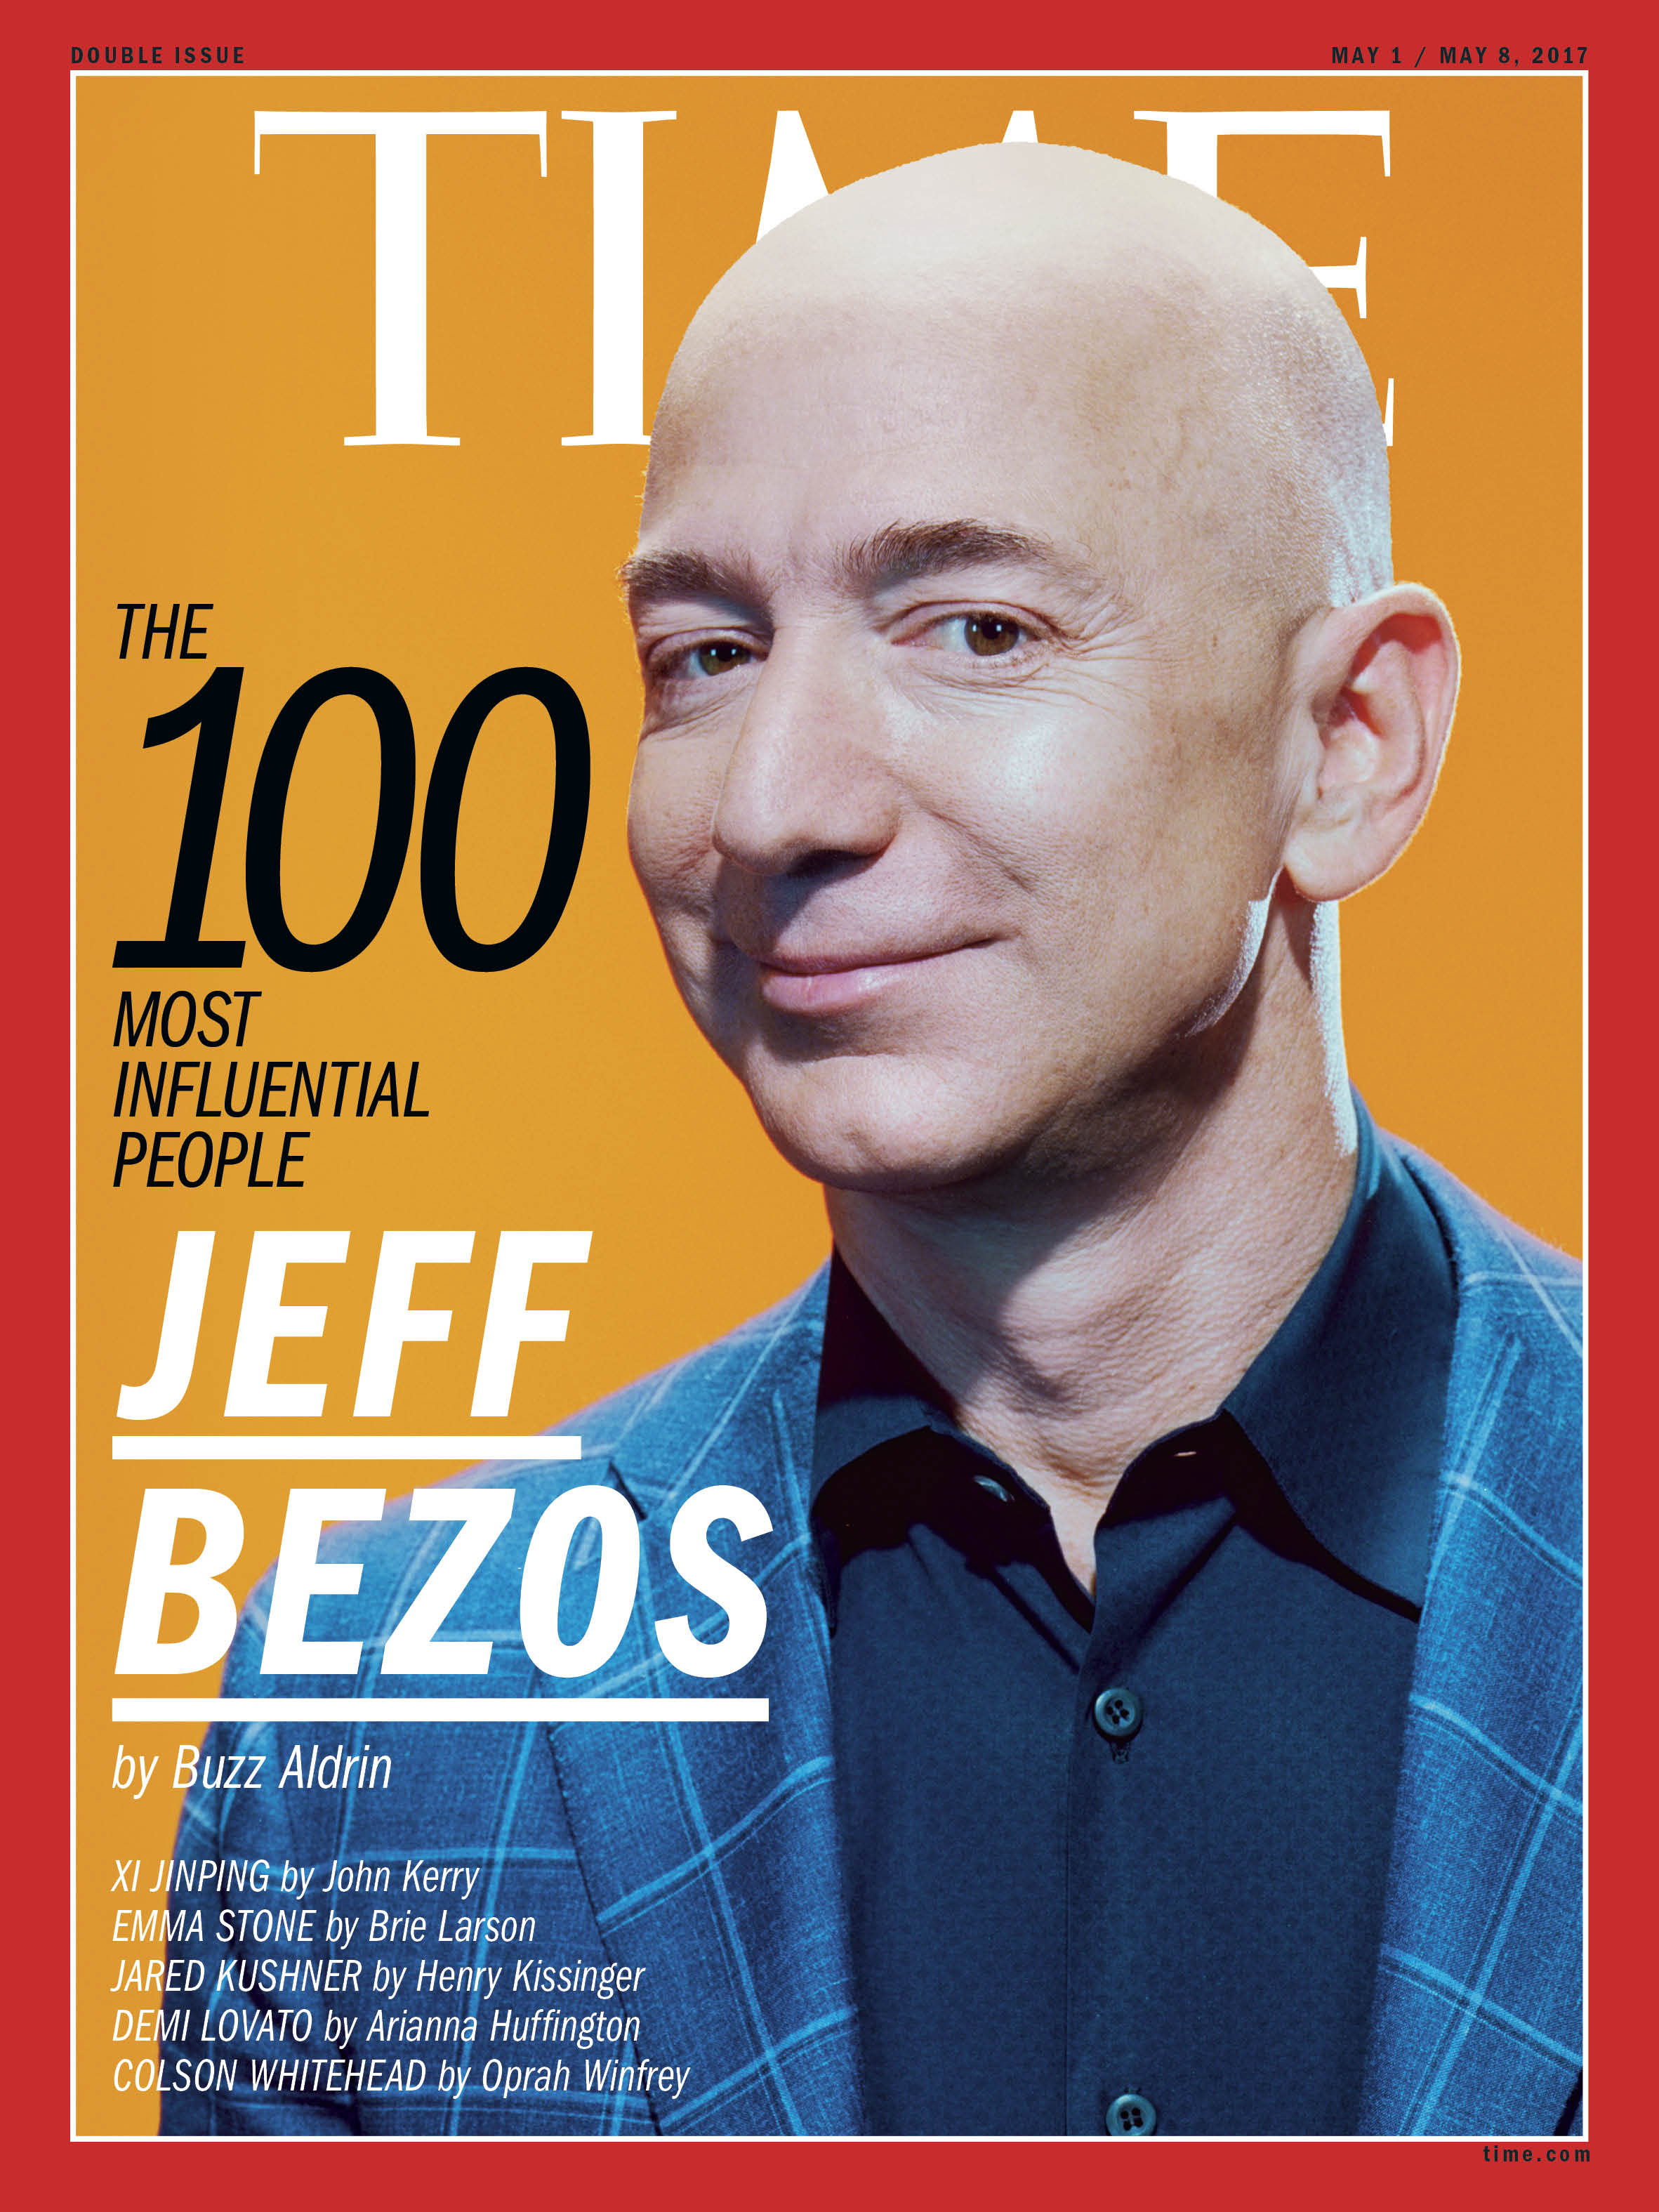 Jeff Bezos, TIME 100 Most Influential People cover.